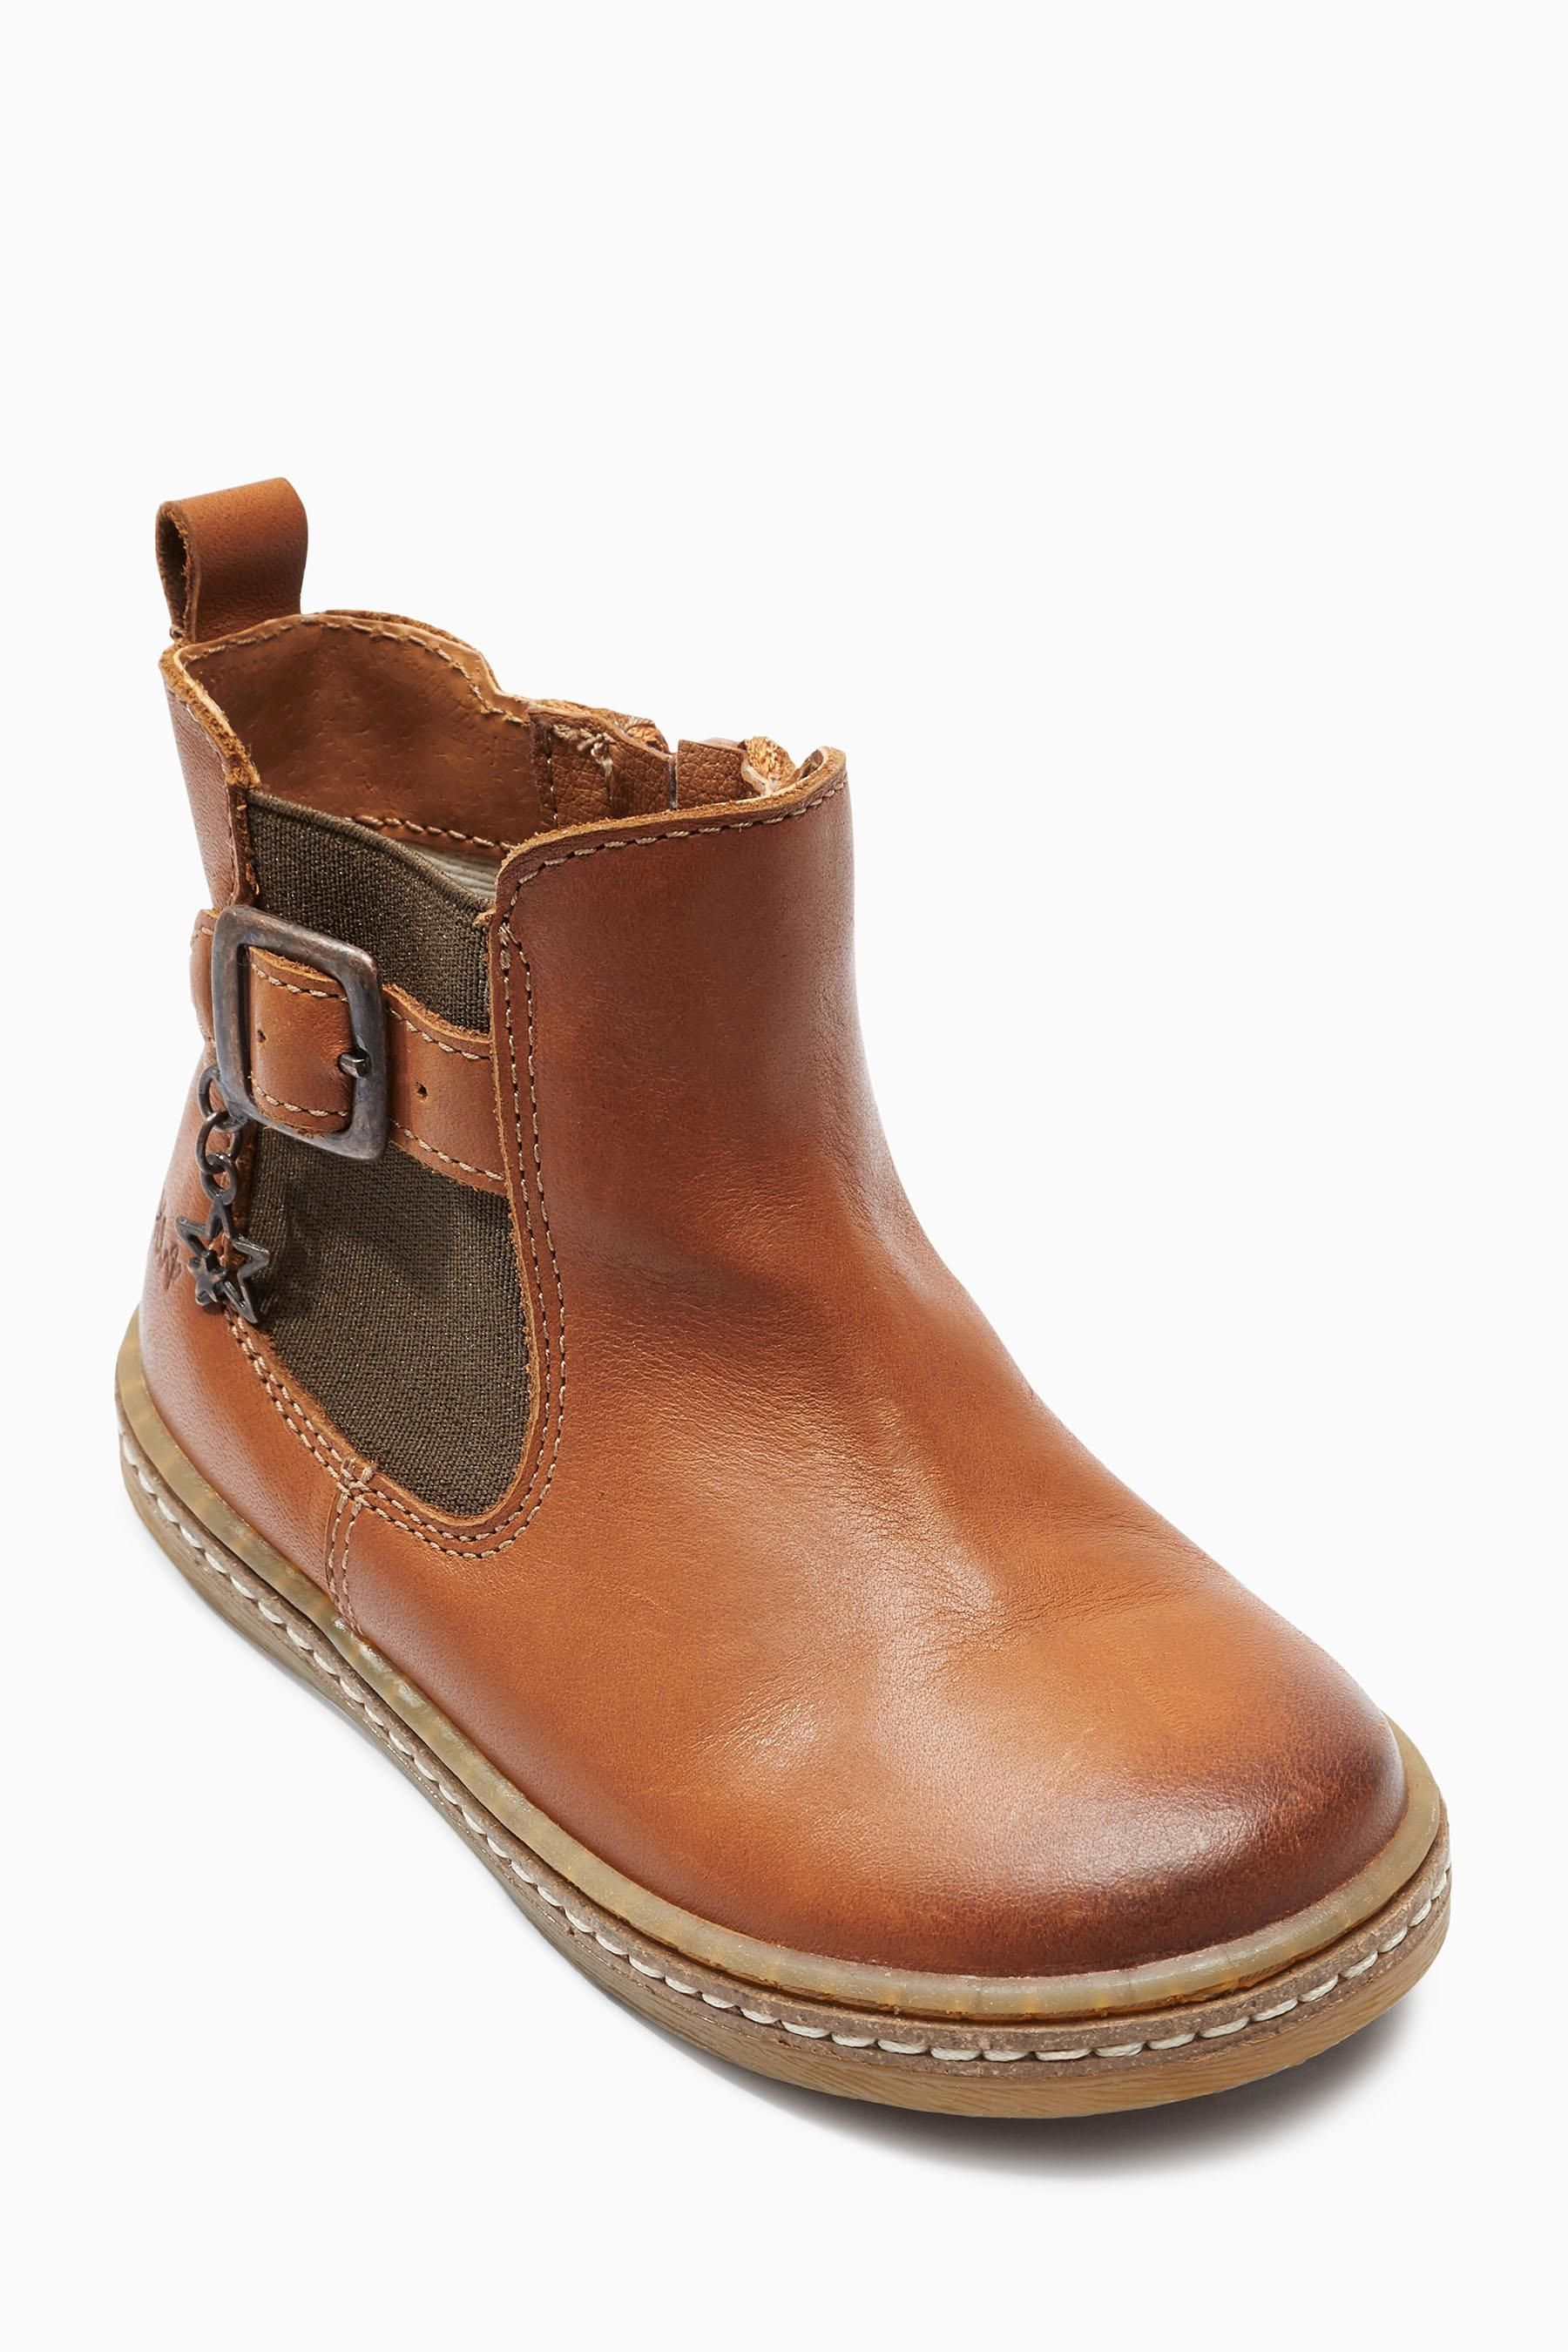 Buy Tan Chelsea Charm Boots (Younger